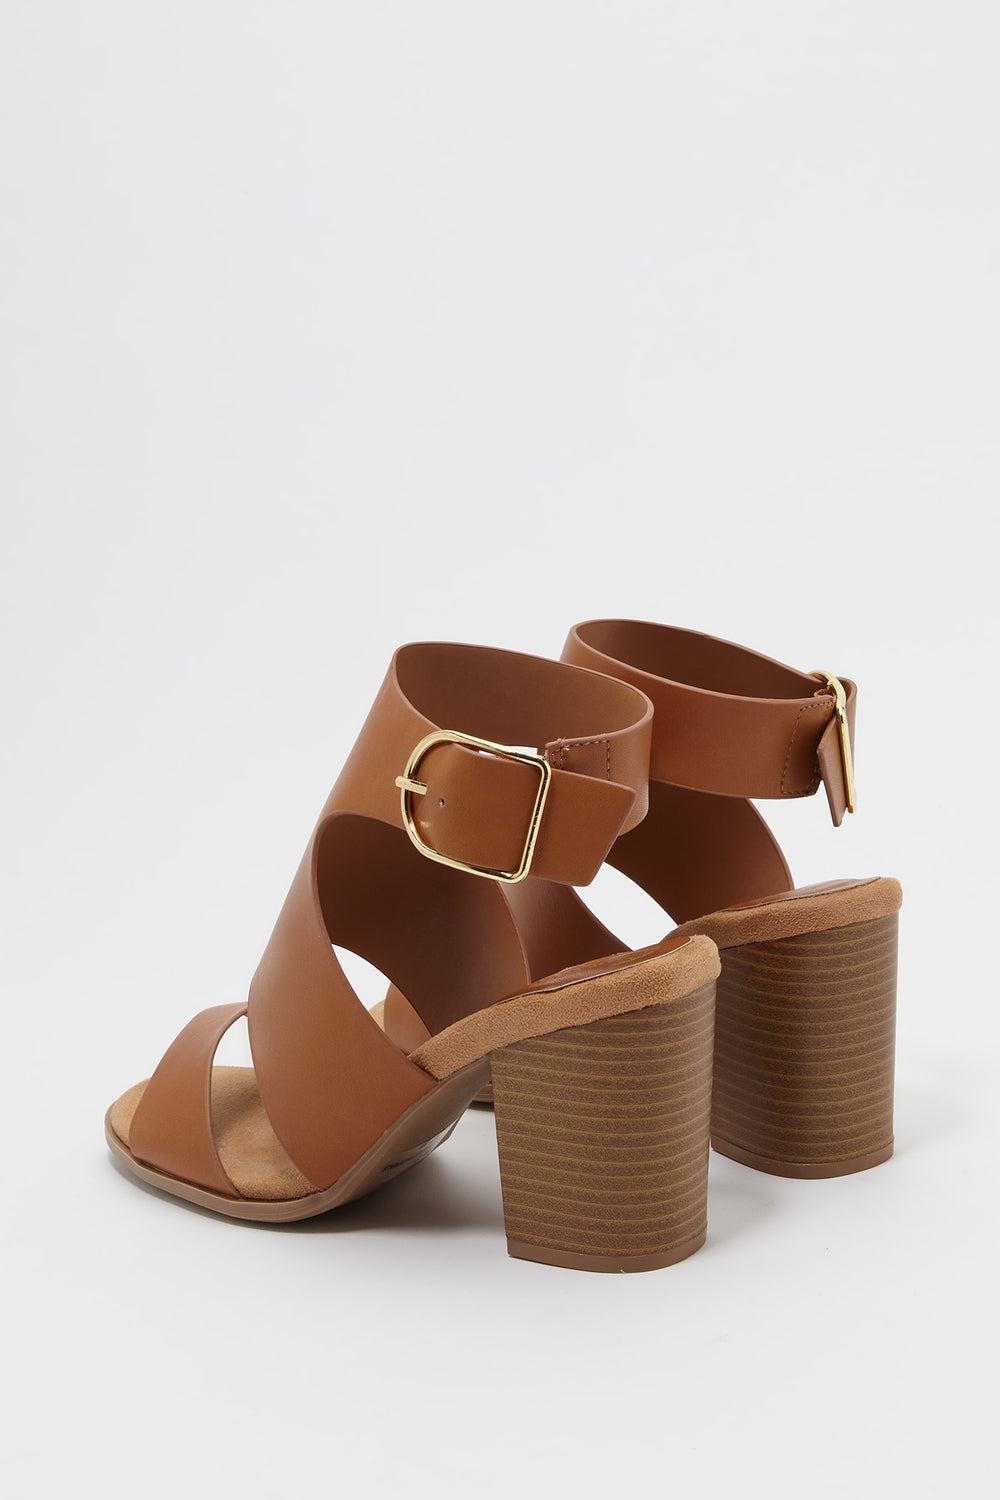 Cut Out Faux-Leather Block Heel Sandal Medium Brown